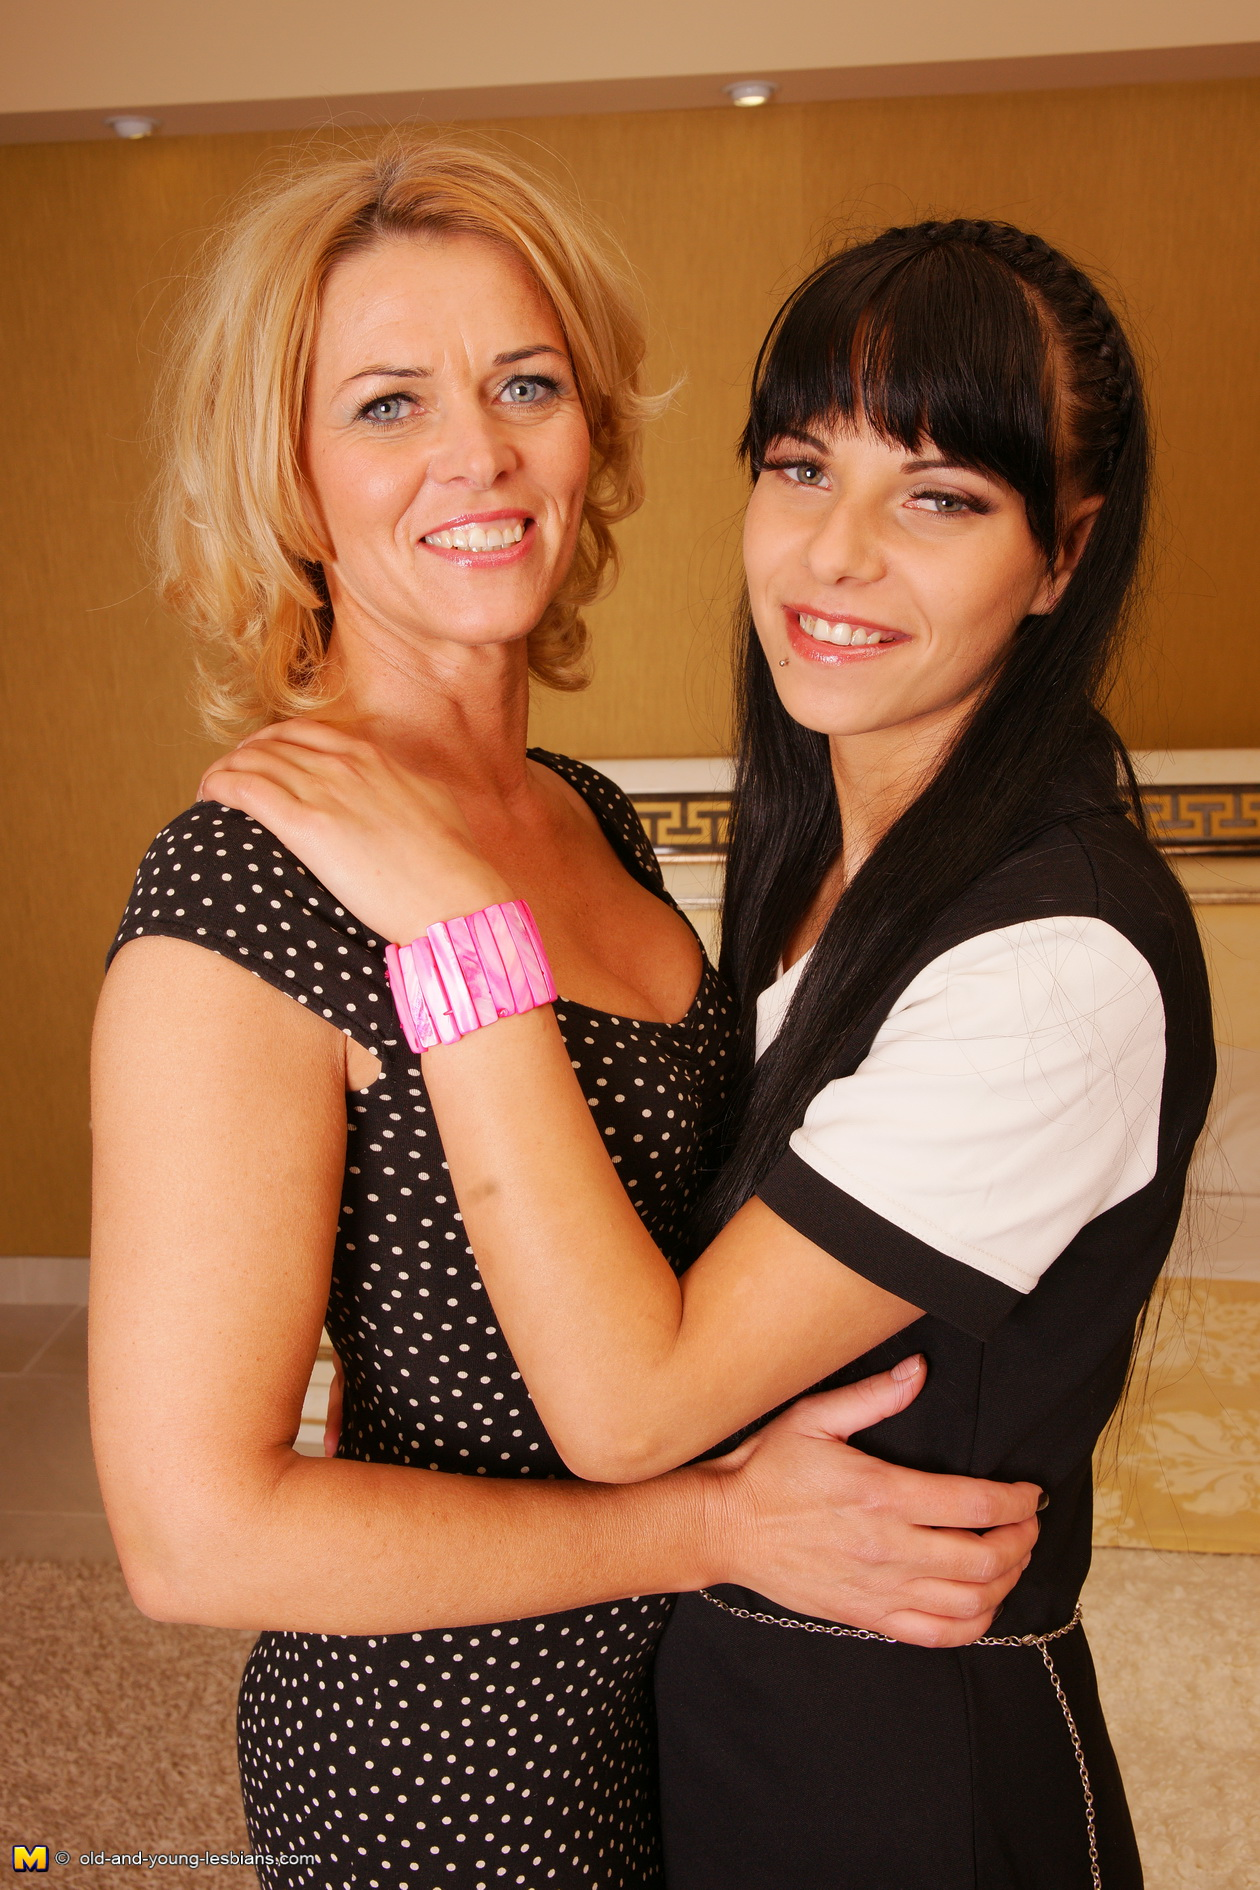 Mature lesbian picture galleries